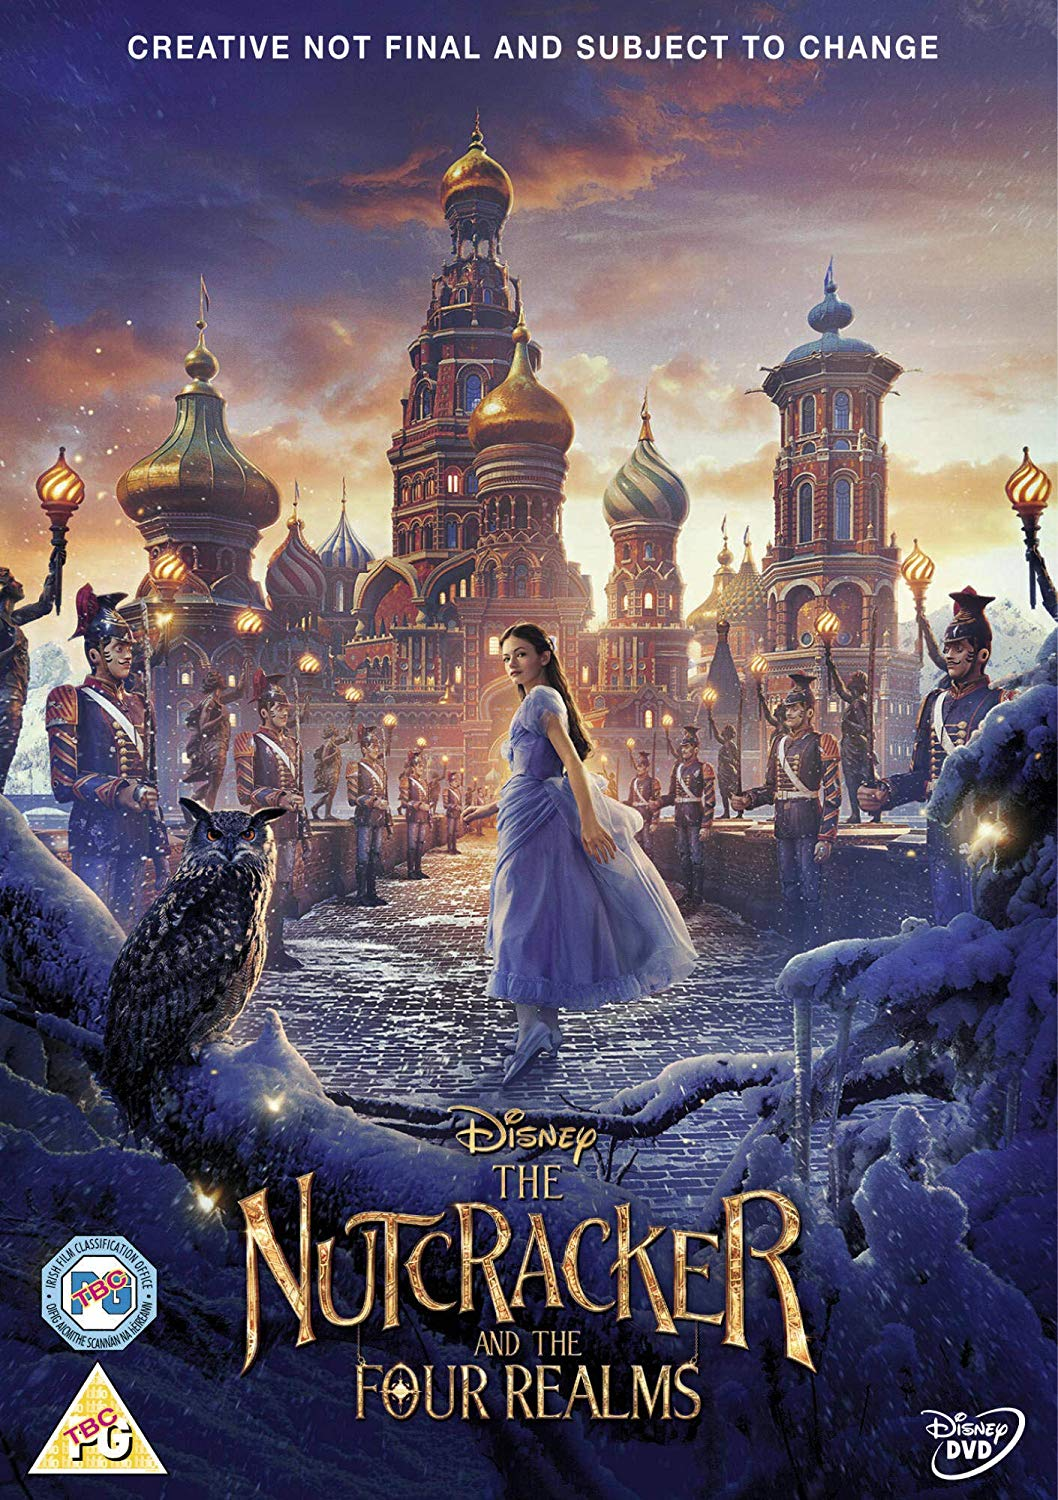 The Nutcracker and the Four Realms - Lasse Hallstrom [DVD]